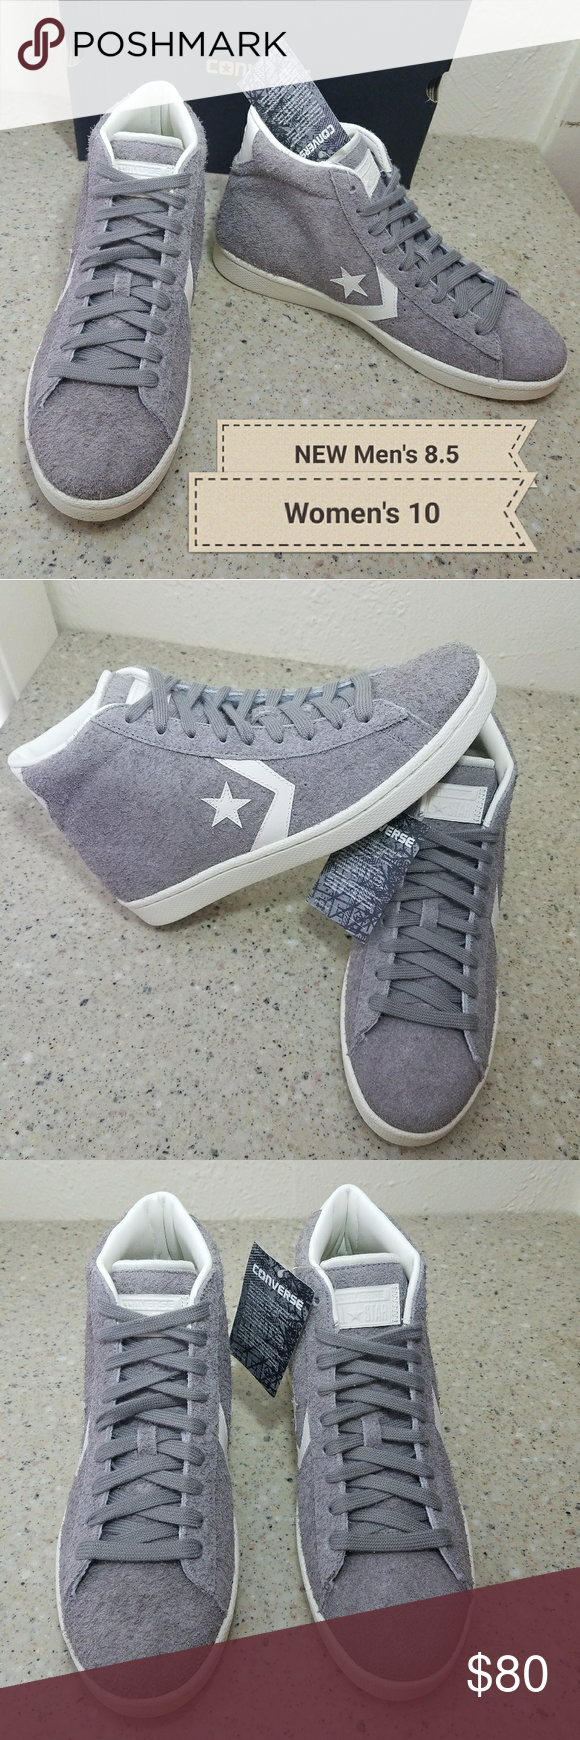 5716085eef6 NEW Converse Leather Pro Suede Men 8.5 Converse Pro Leather Vintage Suede  high tops. These